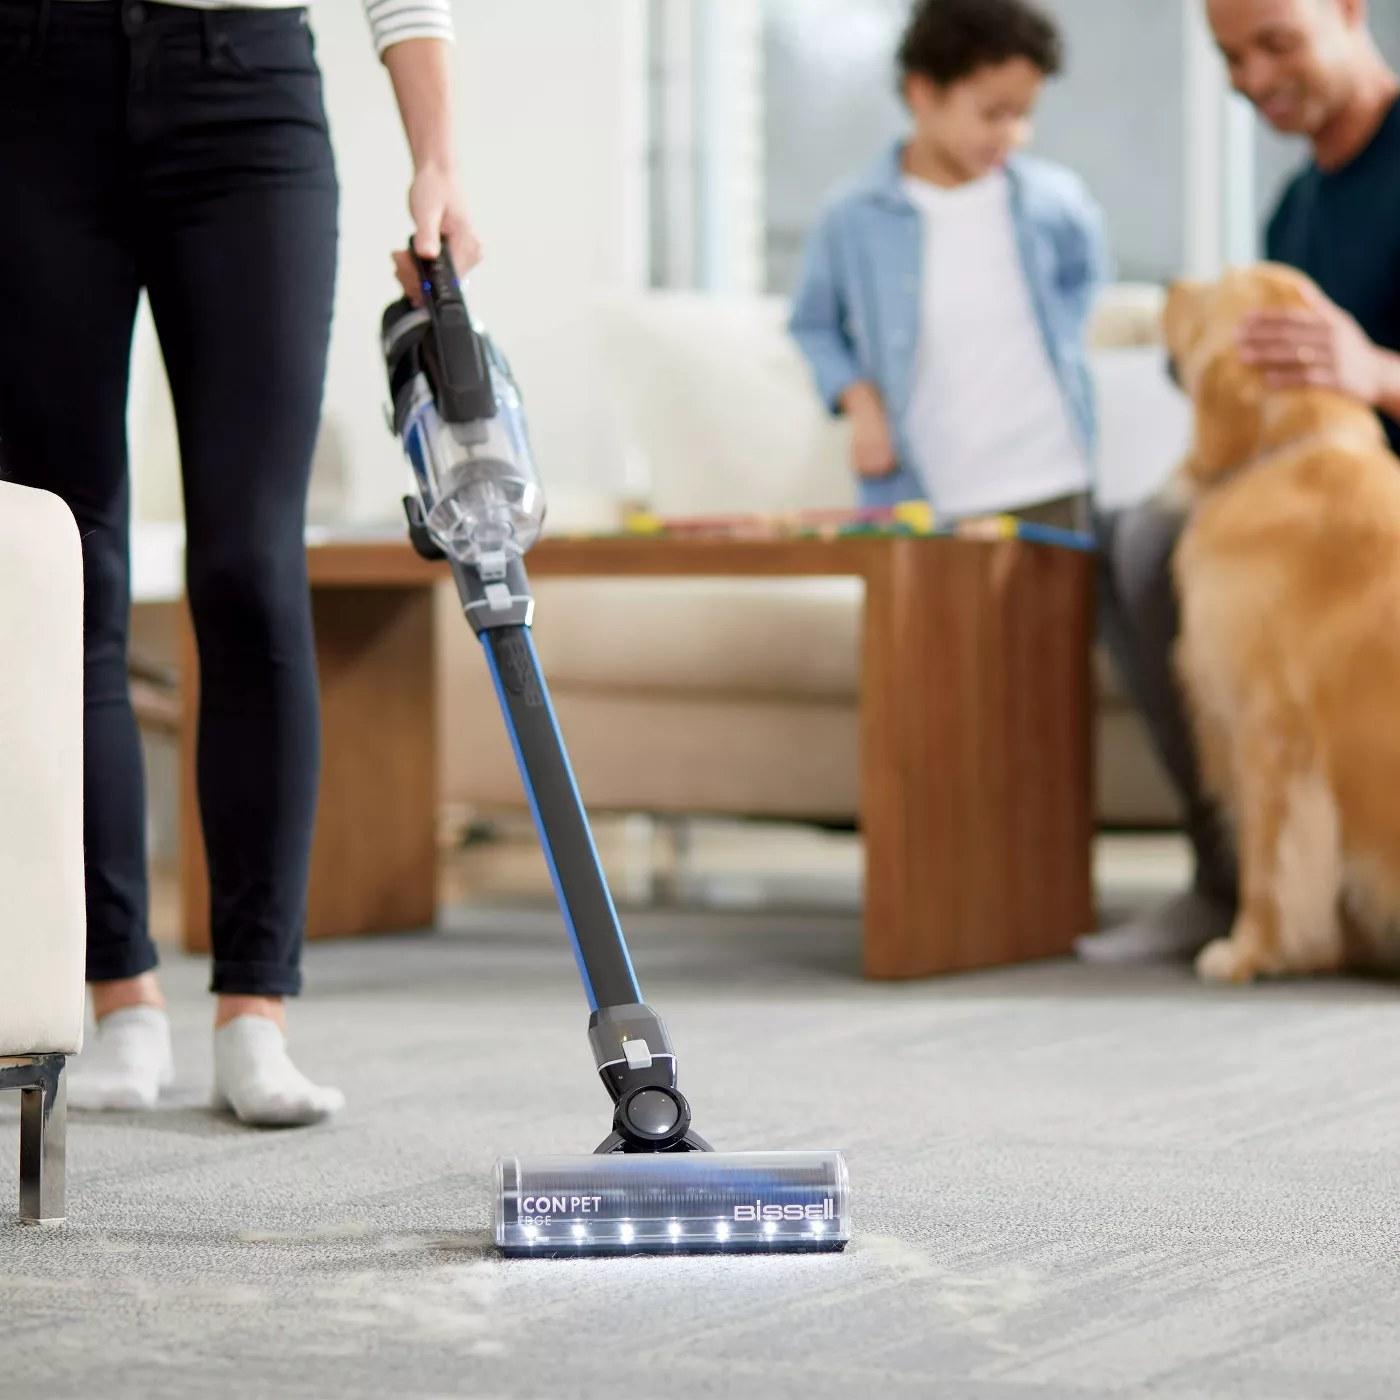 The Bissell Icon Pet cordless vacuum